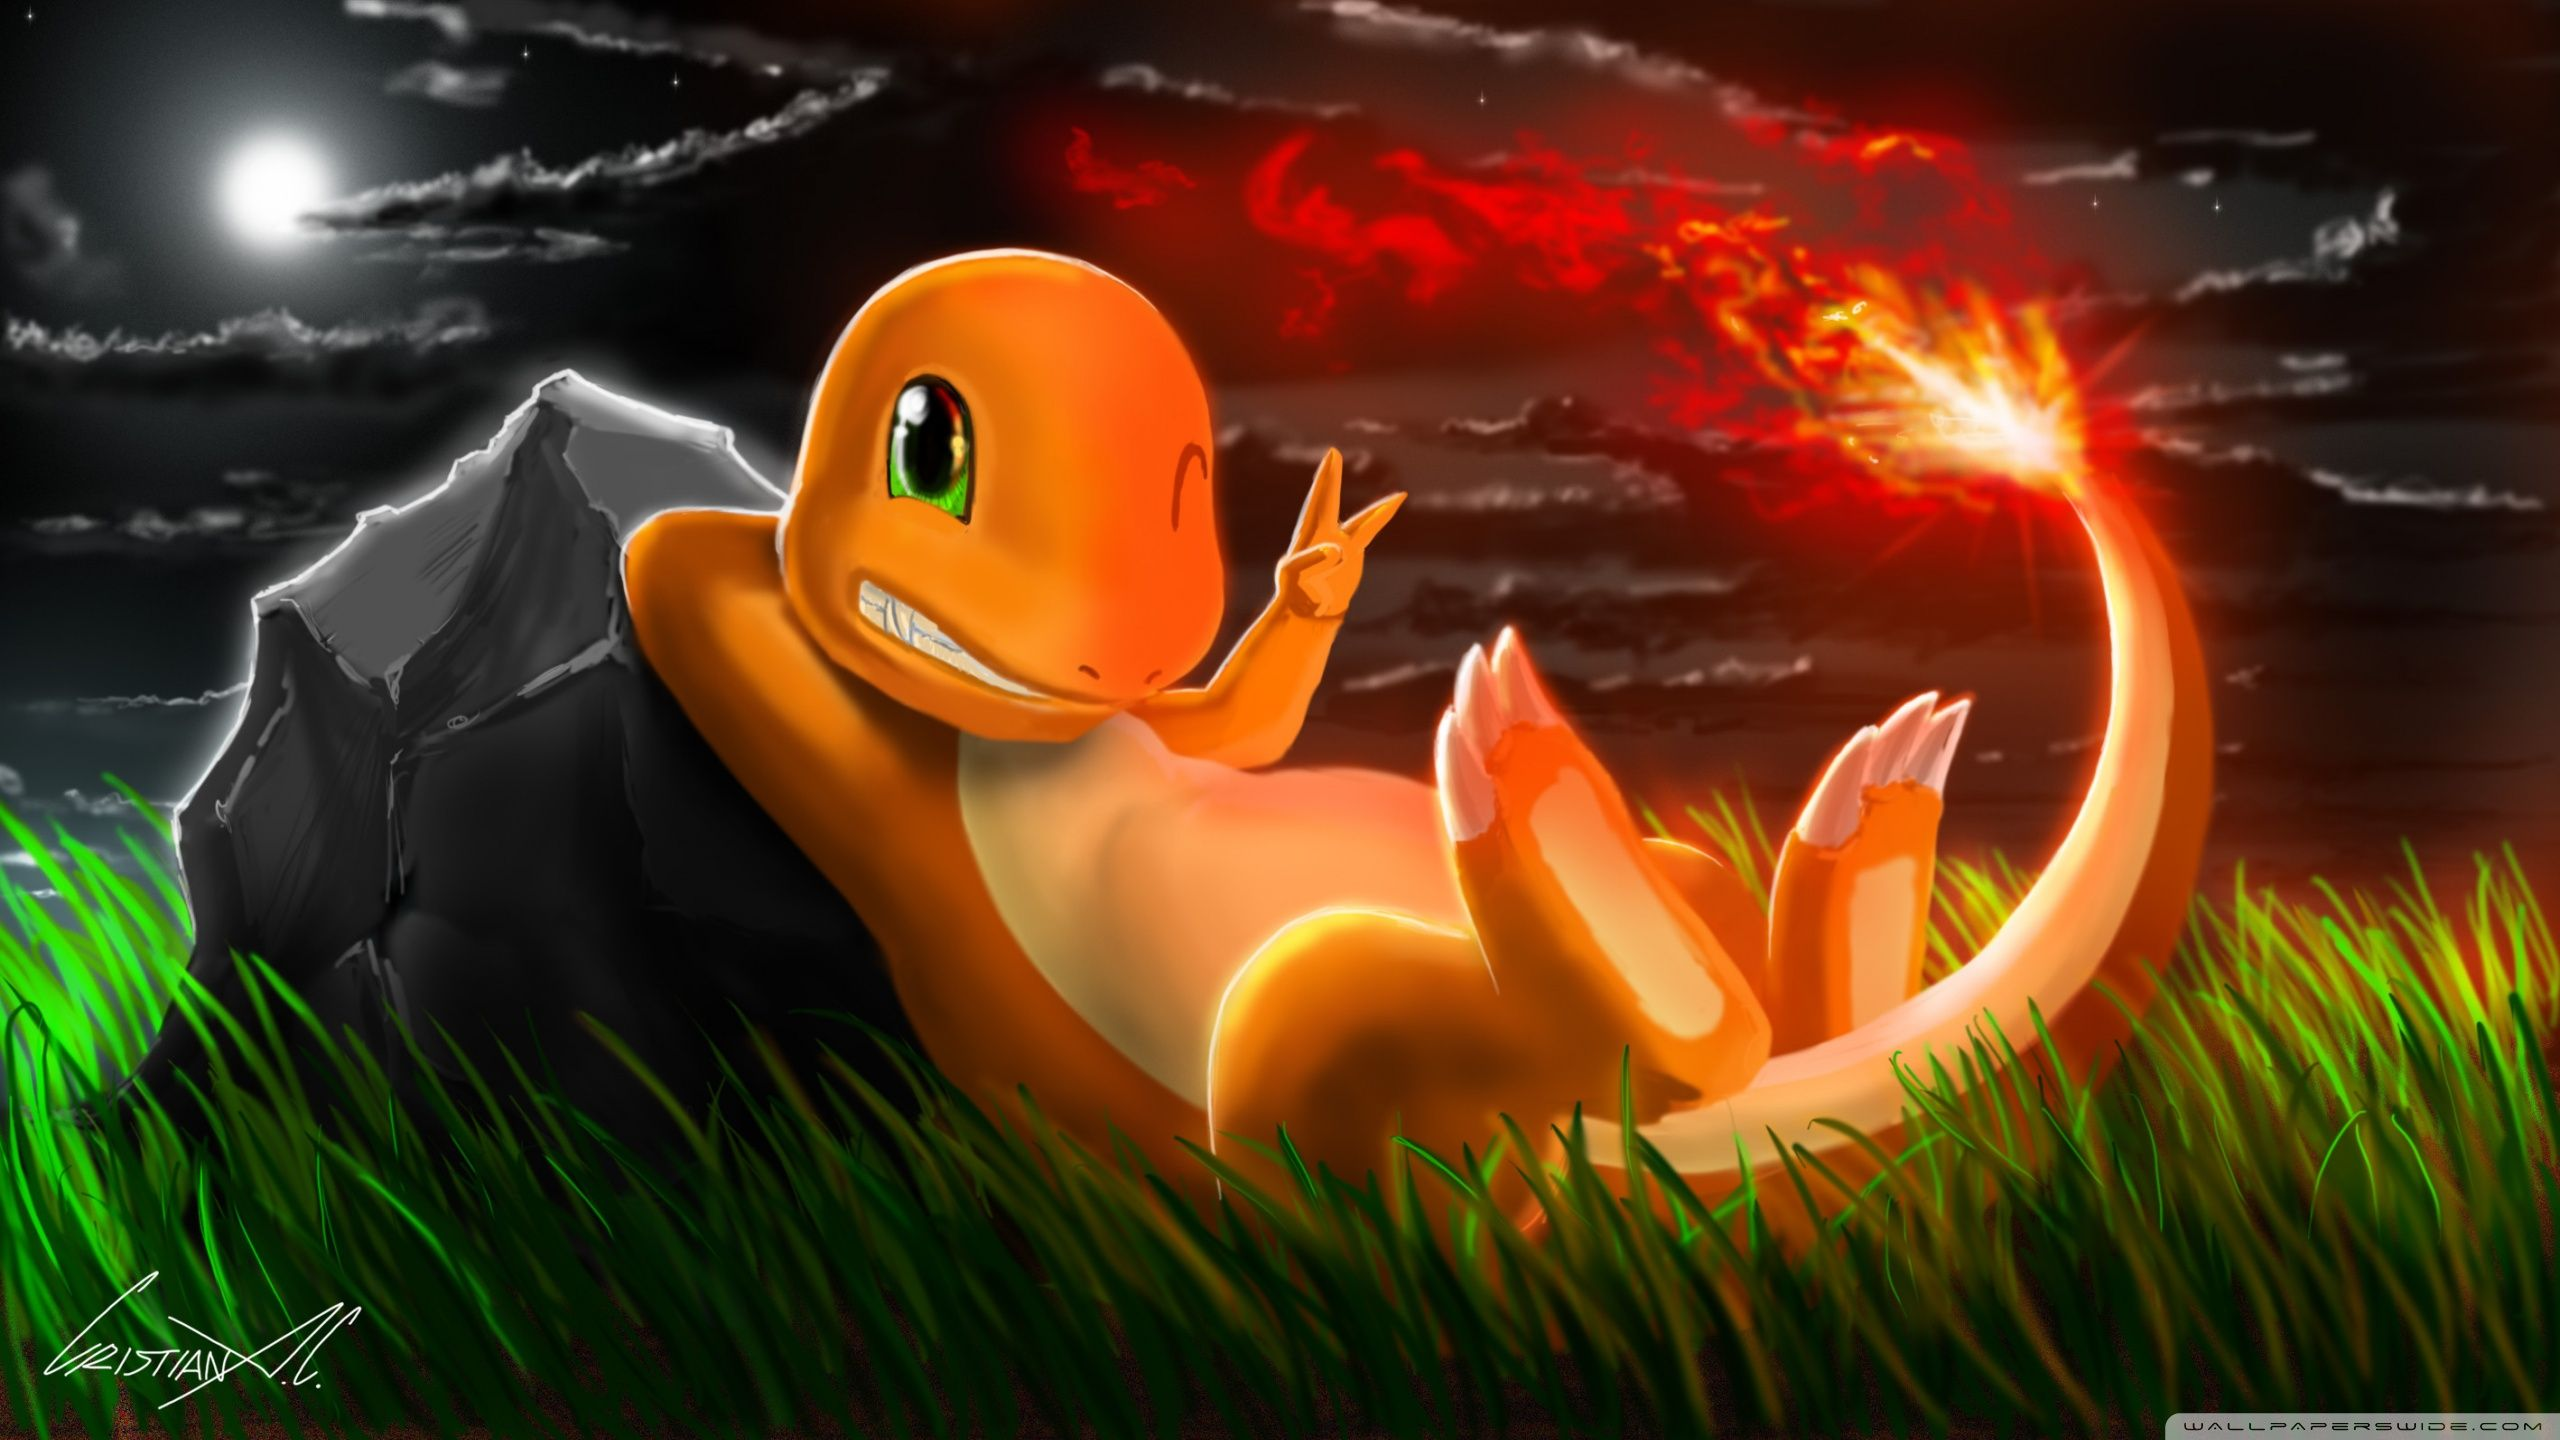 Pokemon Charmander Wallpapers Top Free Pokemon Charmander Backgrounds Wallpaperaccess